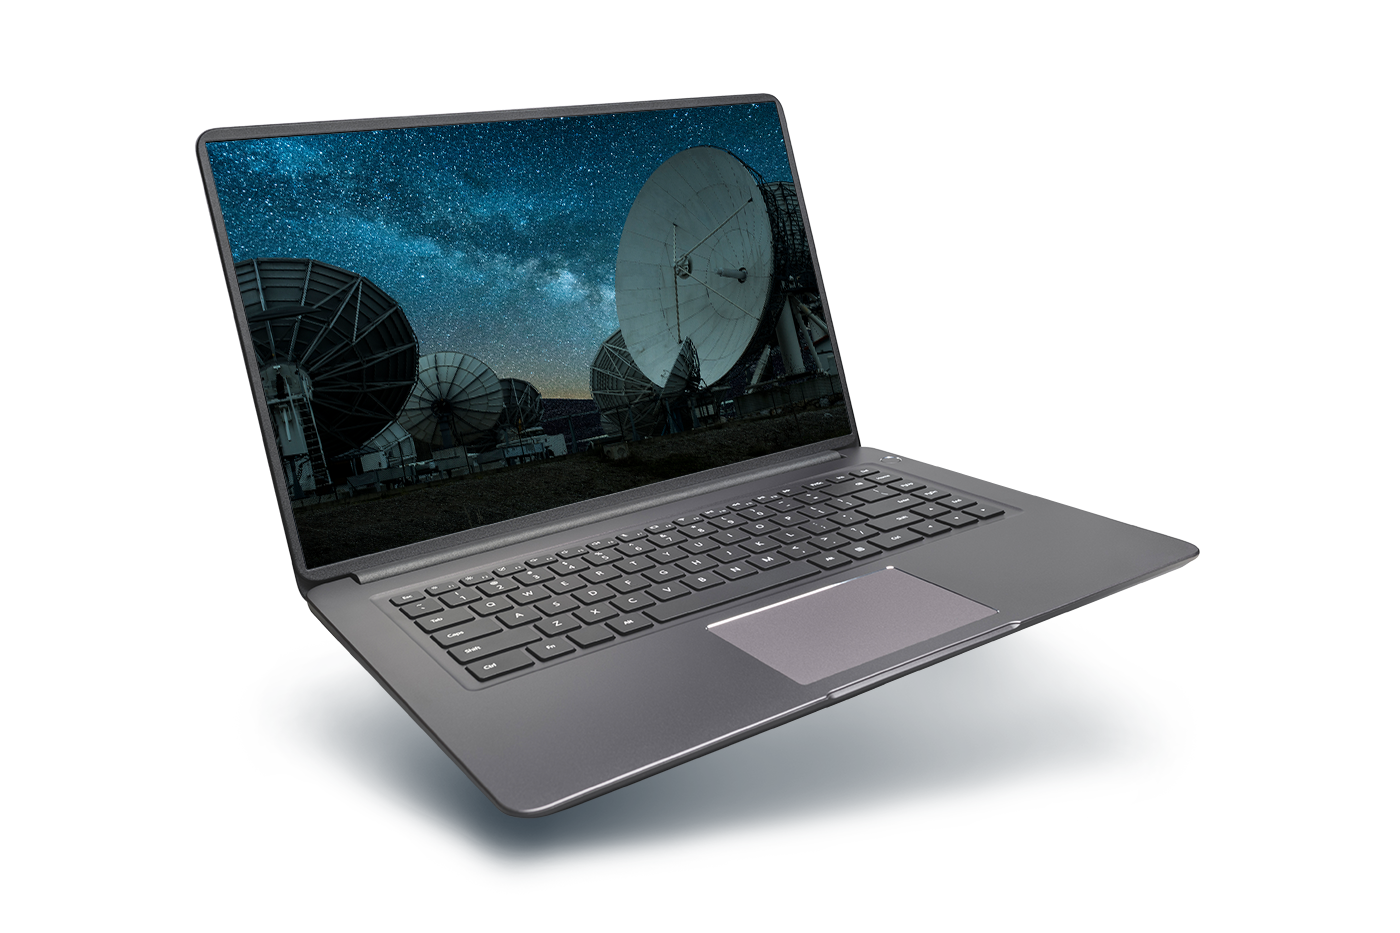 laptop with image of a satellite dish